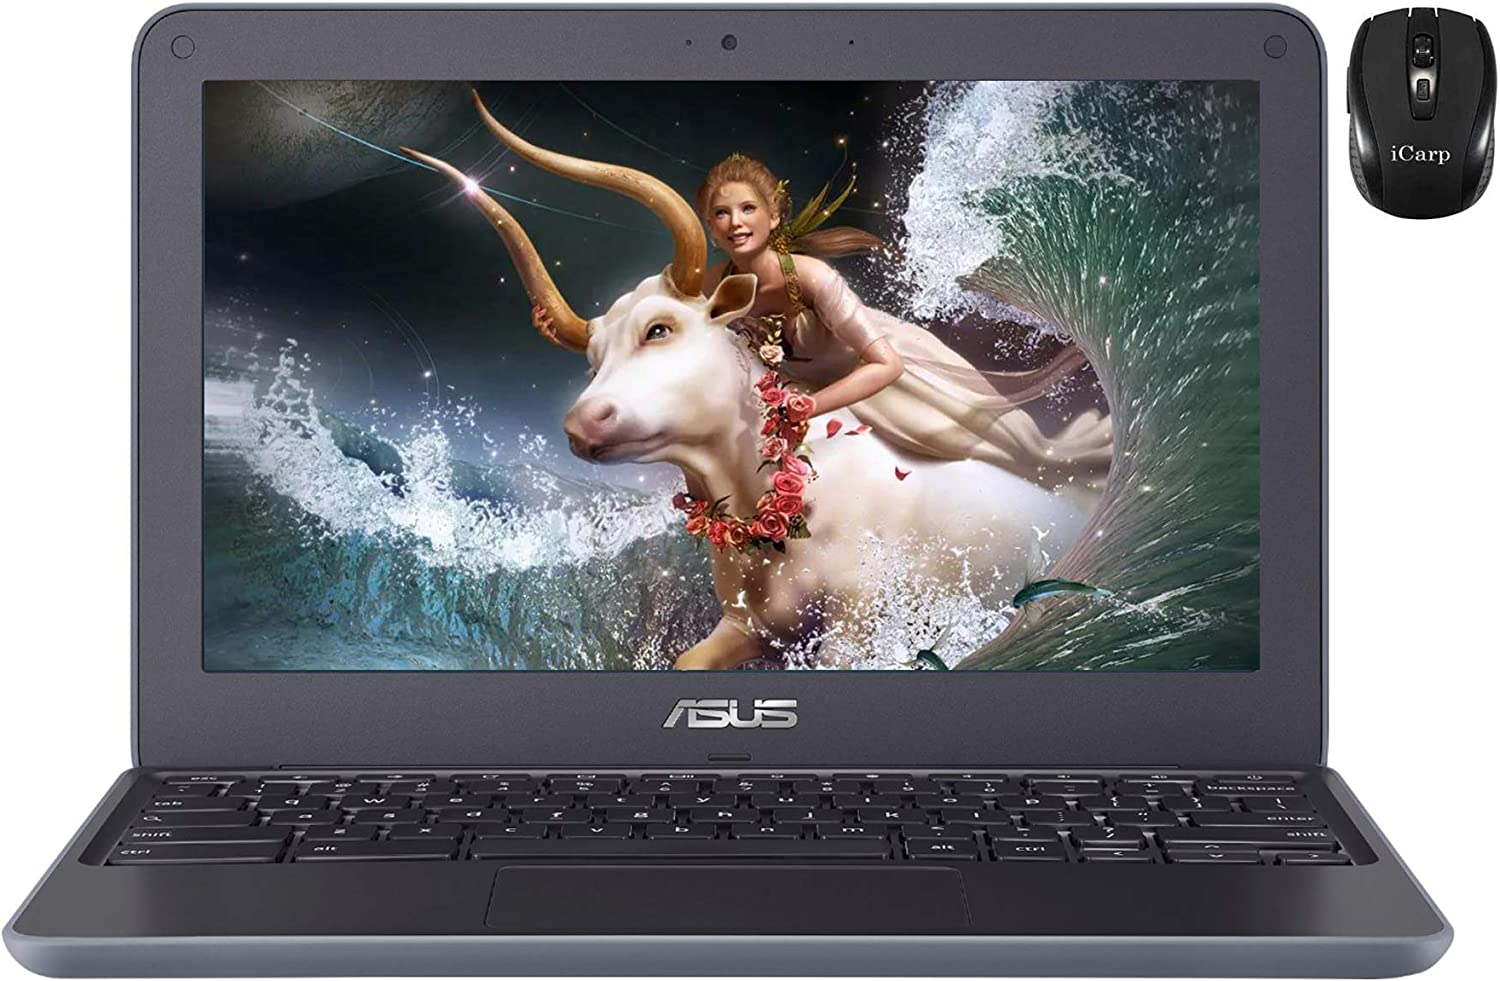 "2020 Flagship ASUS Chromebook Laptop Computer 11.6"" HD Anti-Glare Display Media Tek 4-core MT8173C Processor 4GB RAM 32GB eMMC Type-C HDMI Wifi5 HD Webcam Chrome OS + iCarp Wireless Mouse"